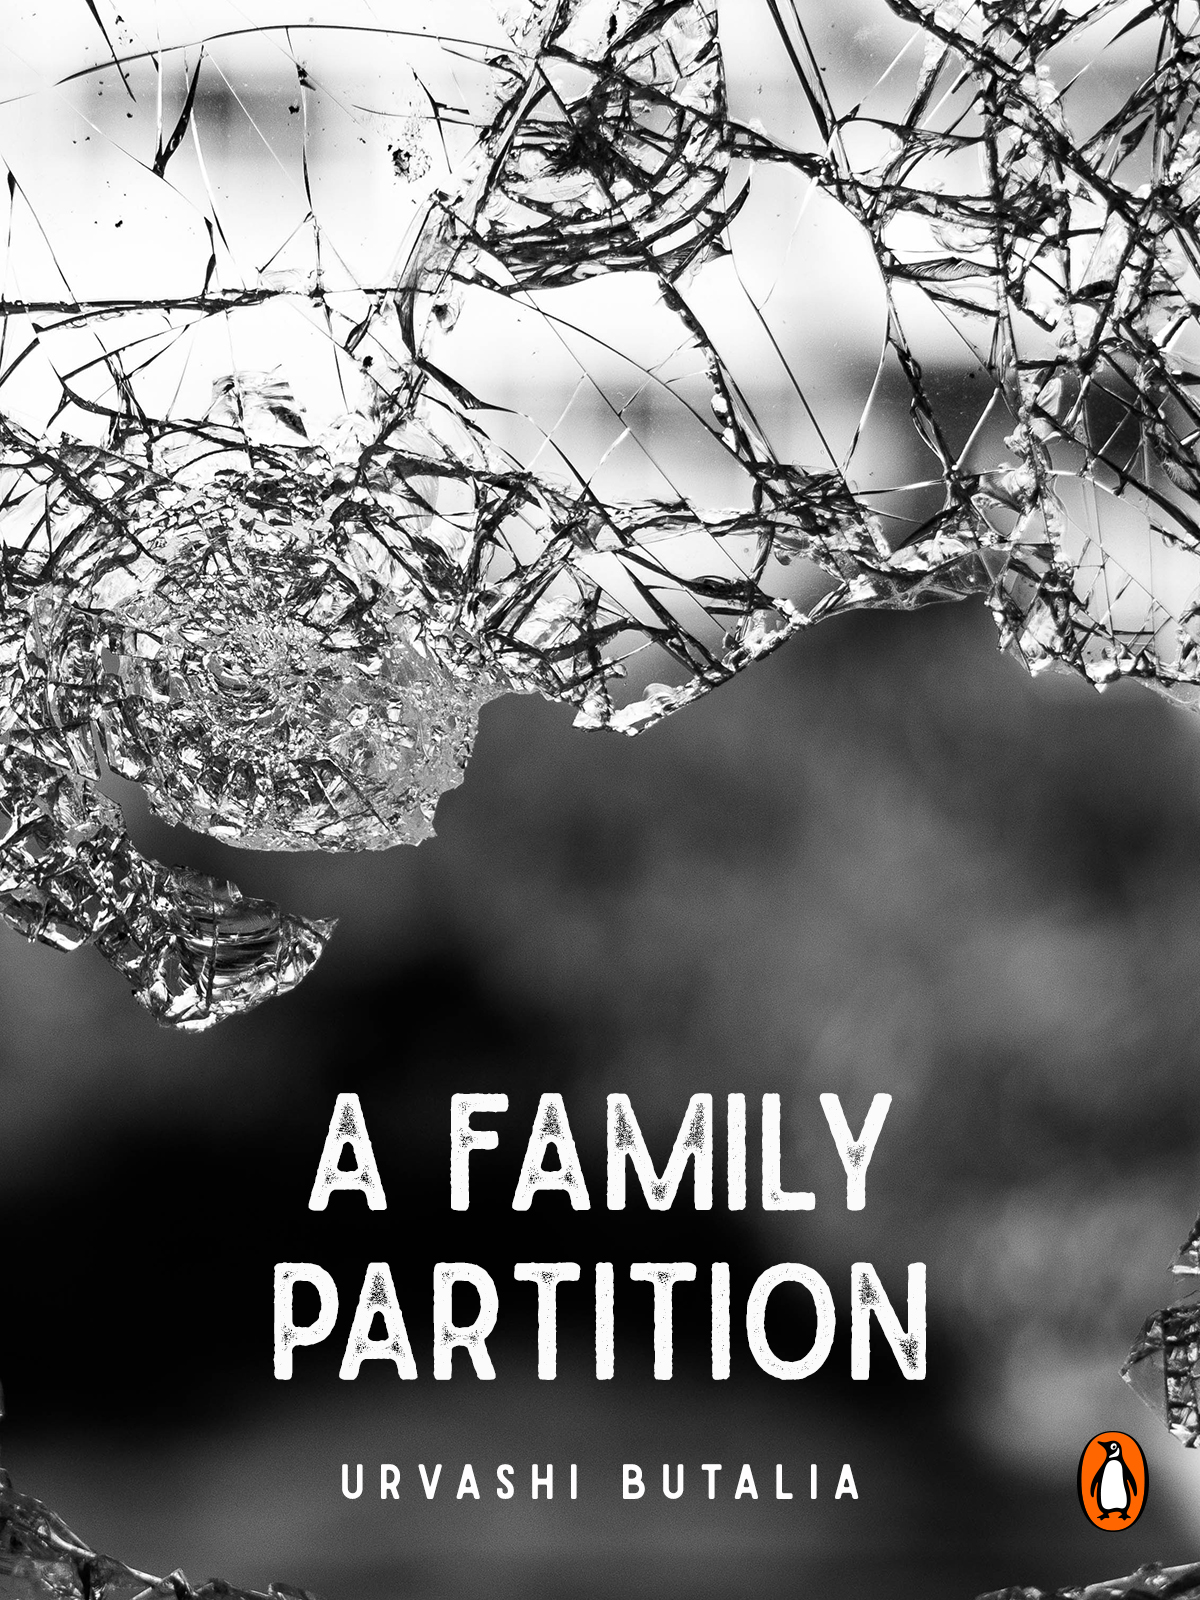 A Family Partition